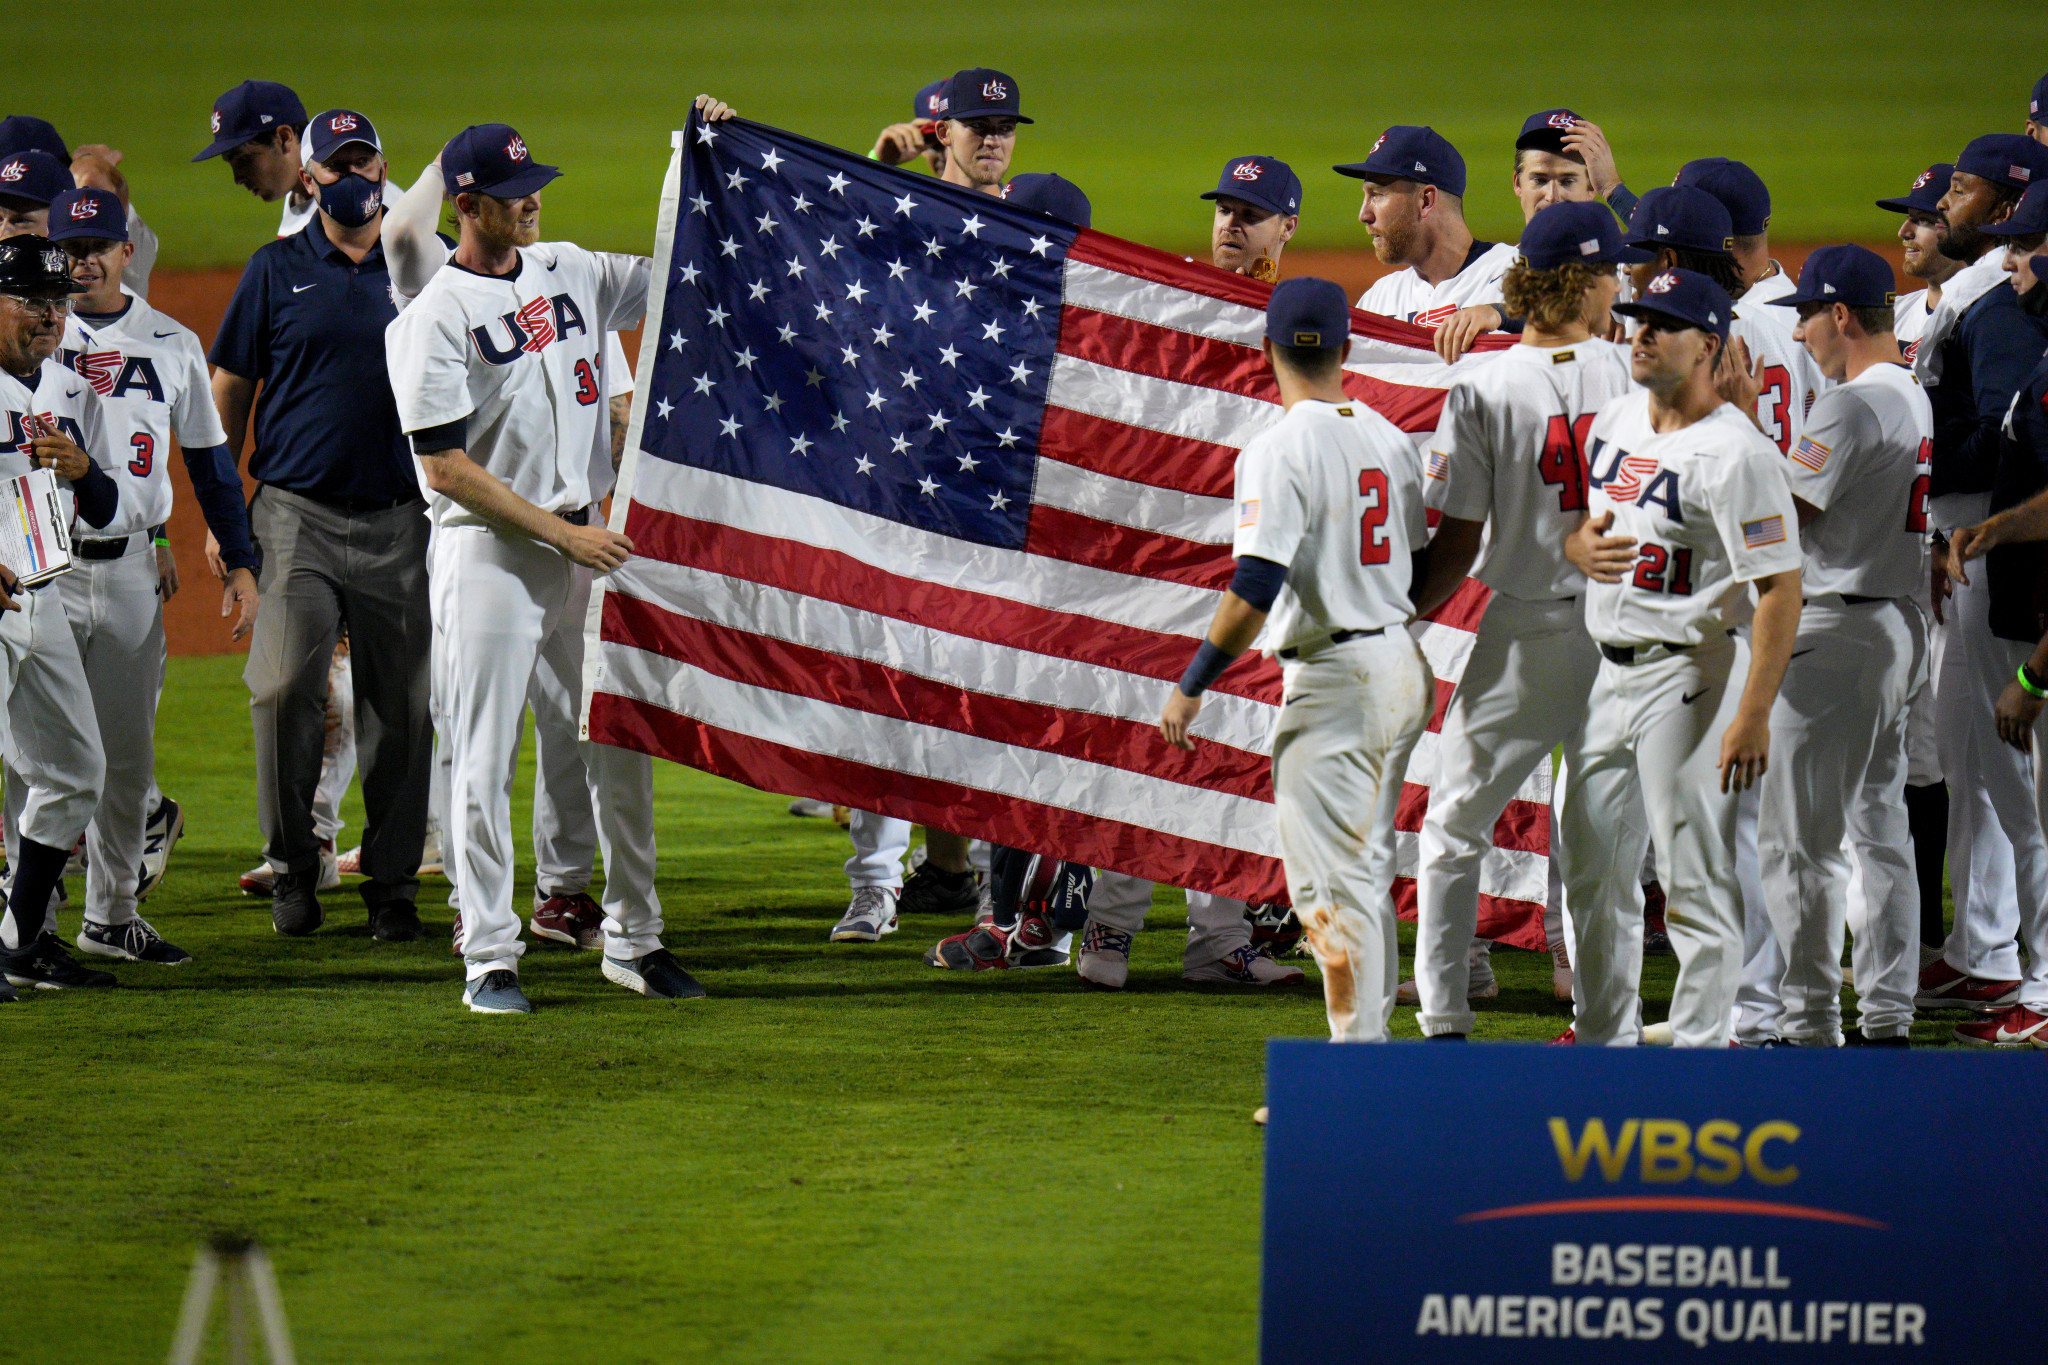 Fans and athletes vaccinated at Americas Olympic baseball qualifier amid no positive COVID-19 cases